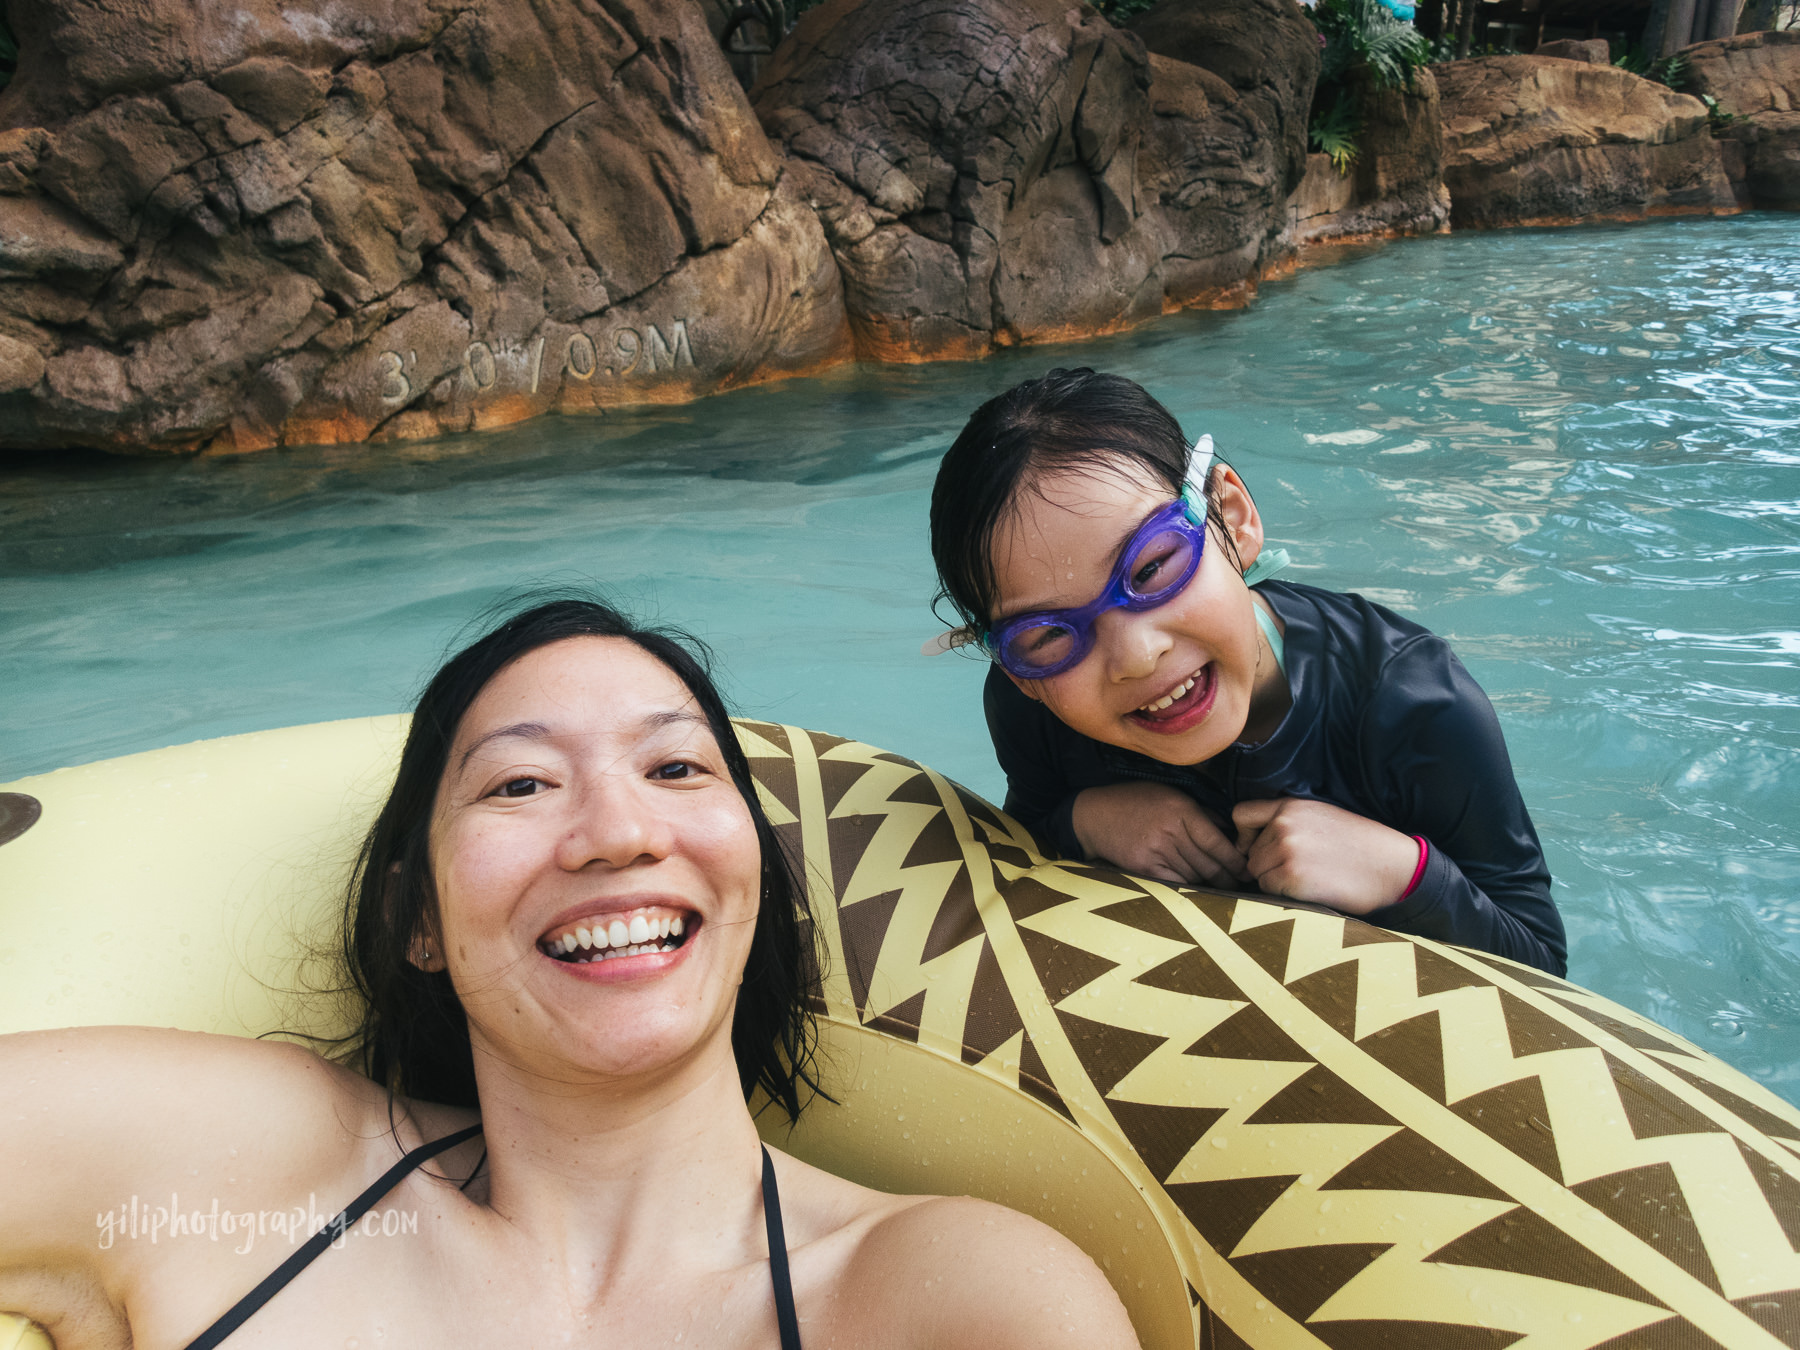 mom in inner tube with daughter in lazy river